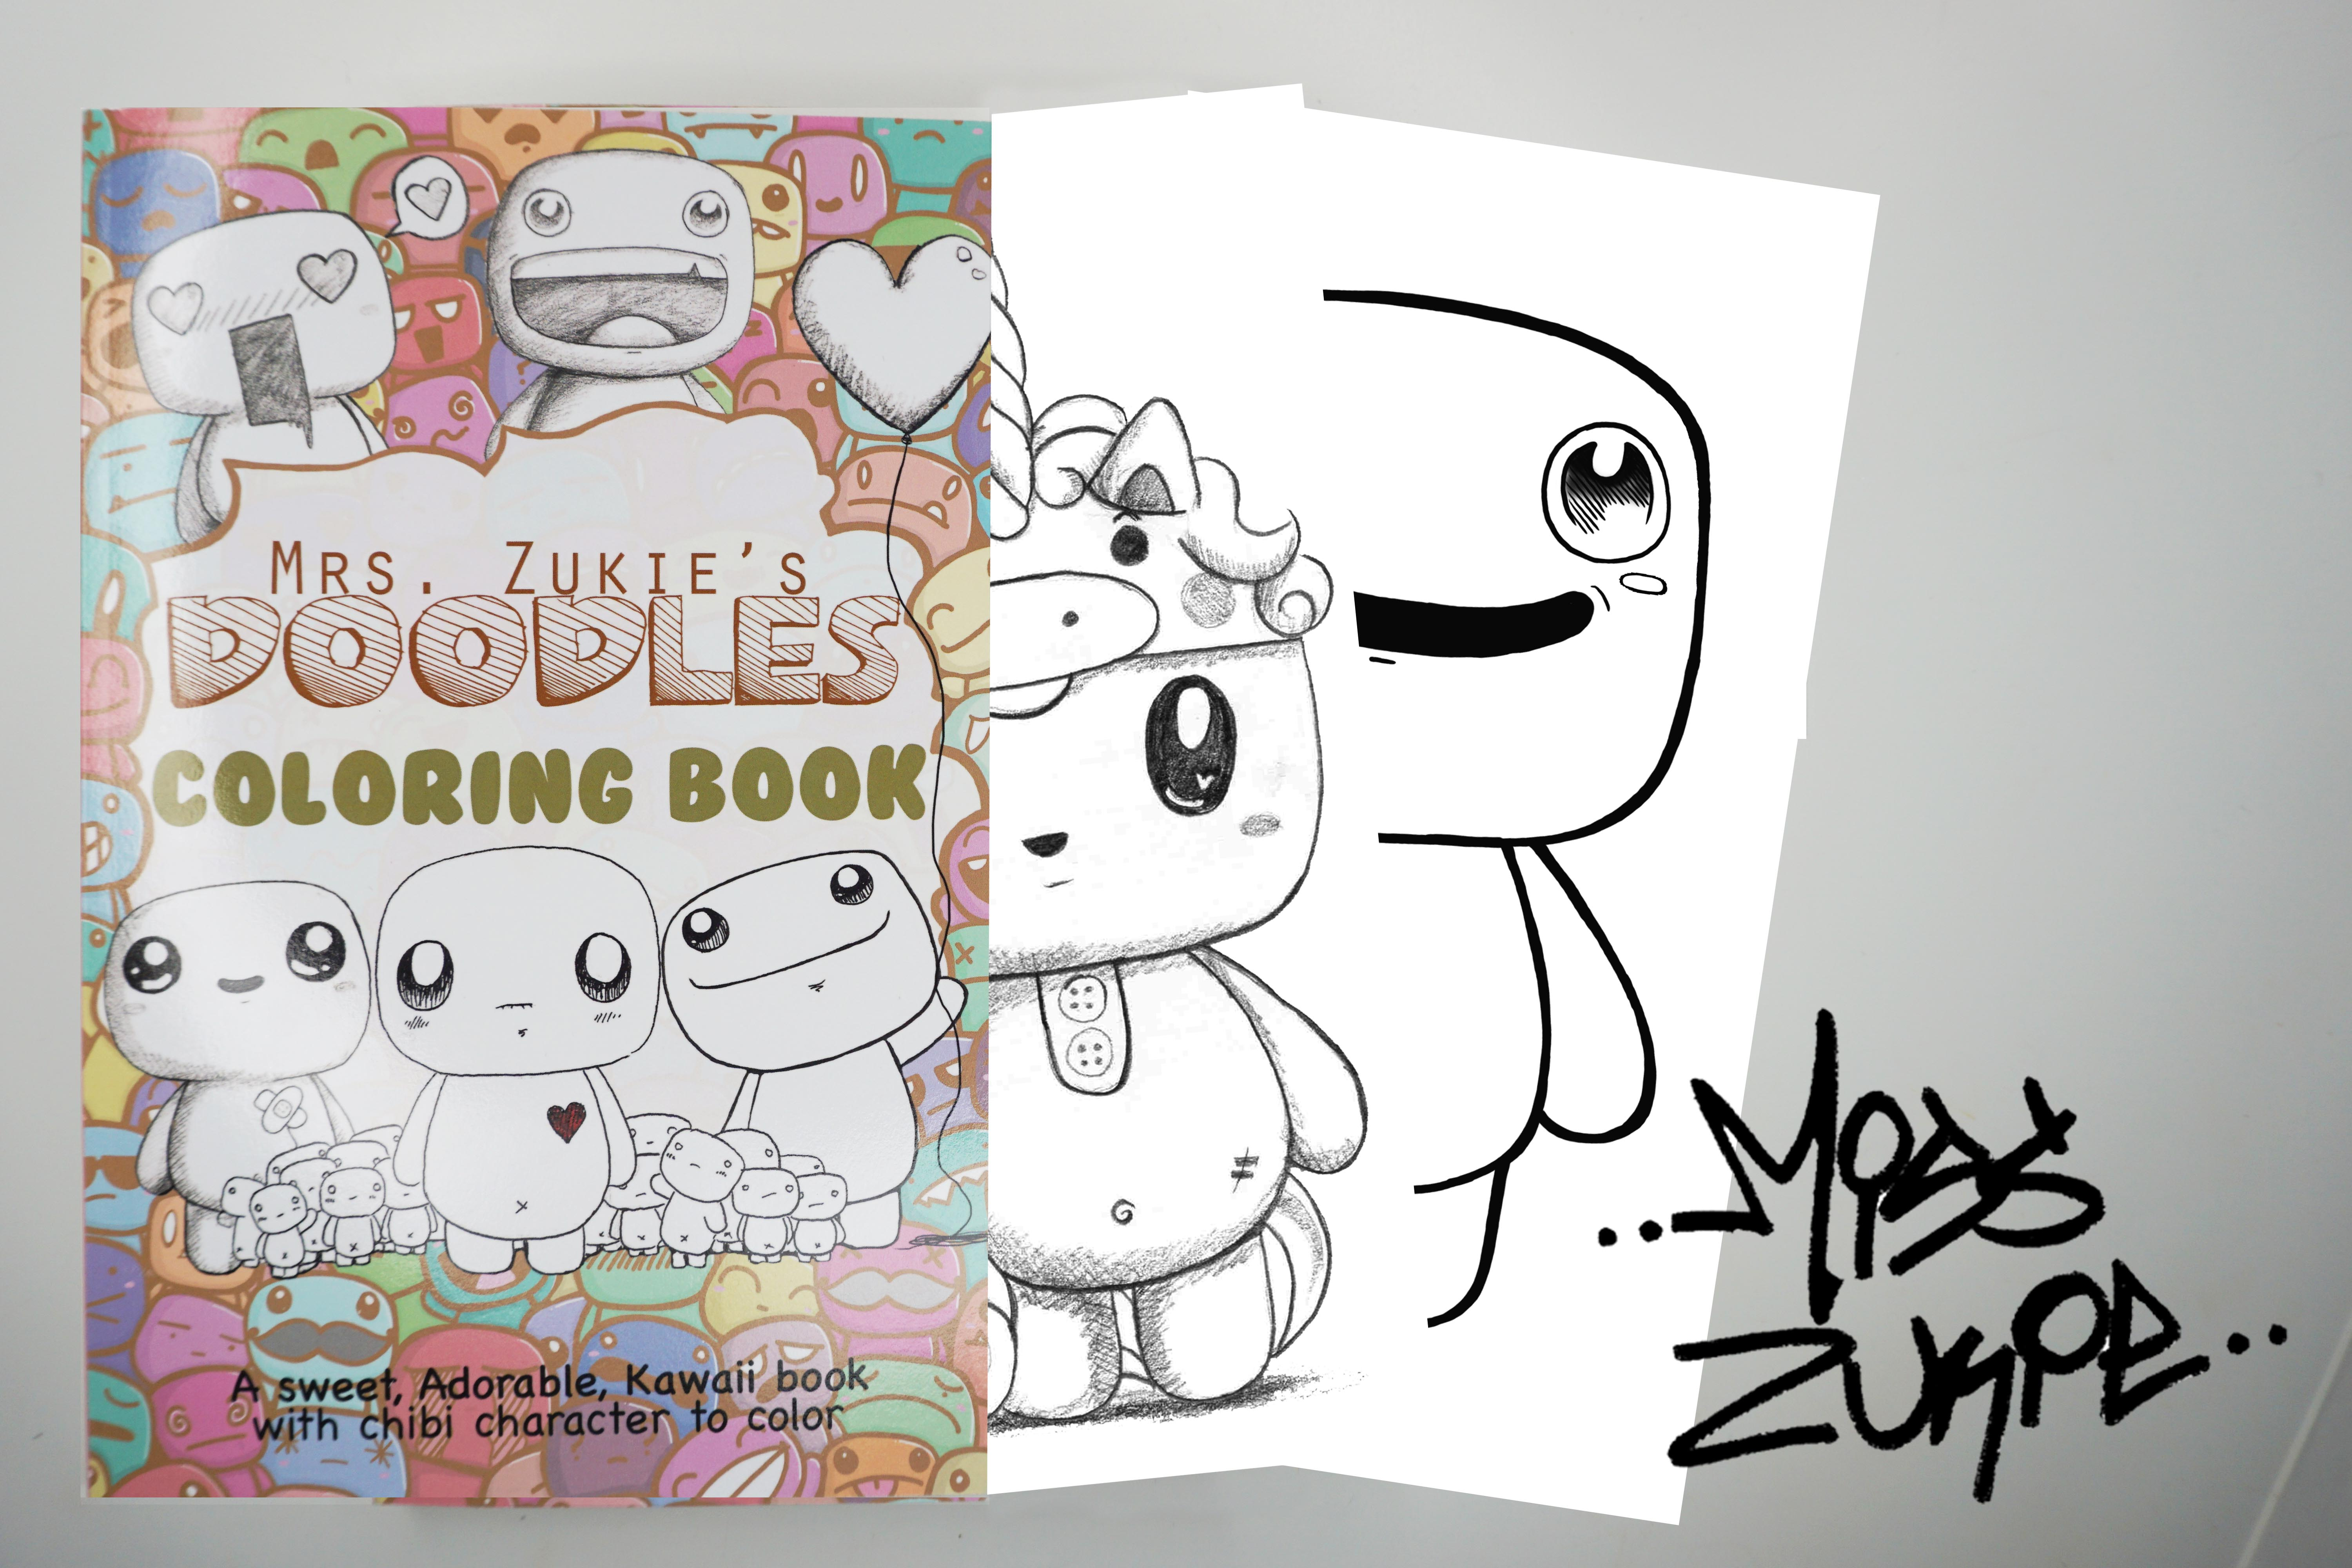 - Mrs. Zukies Doodles Coloring Book On Storenvy